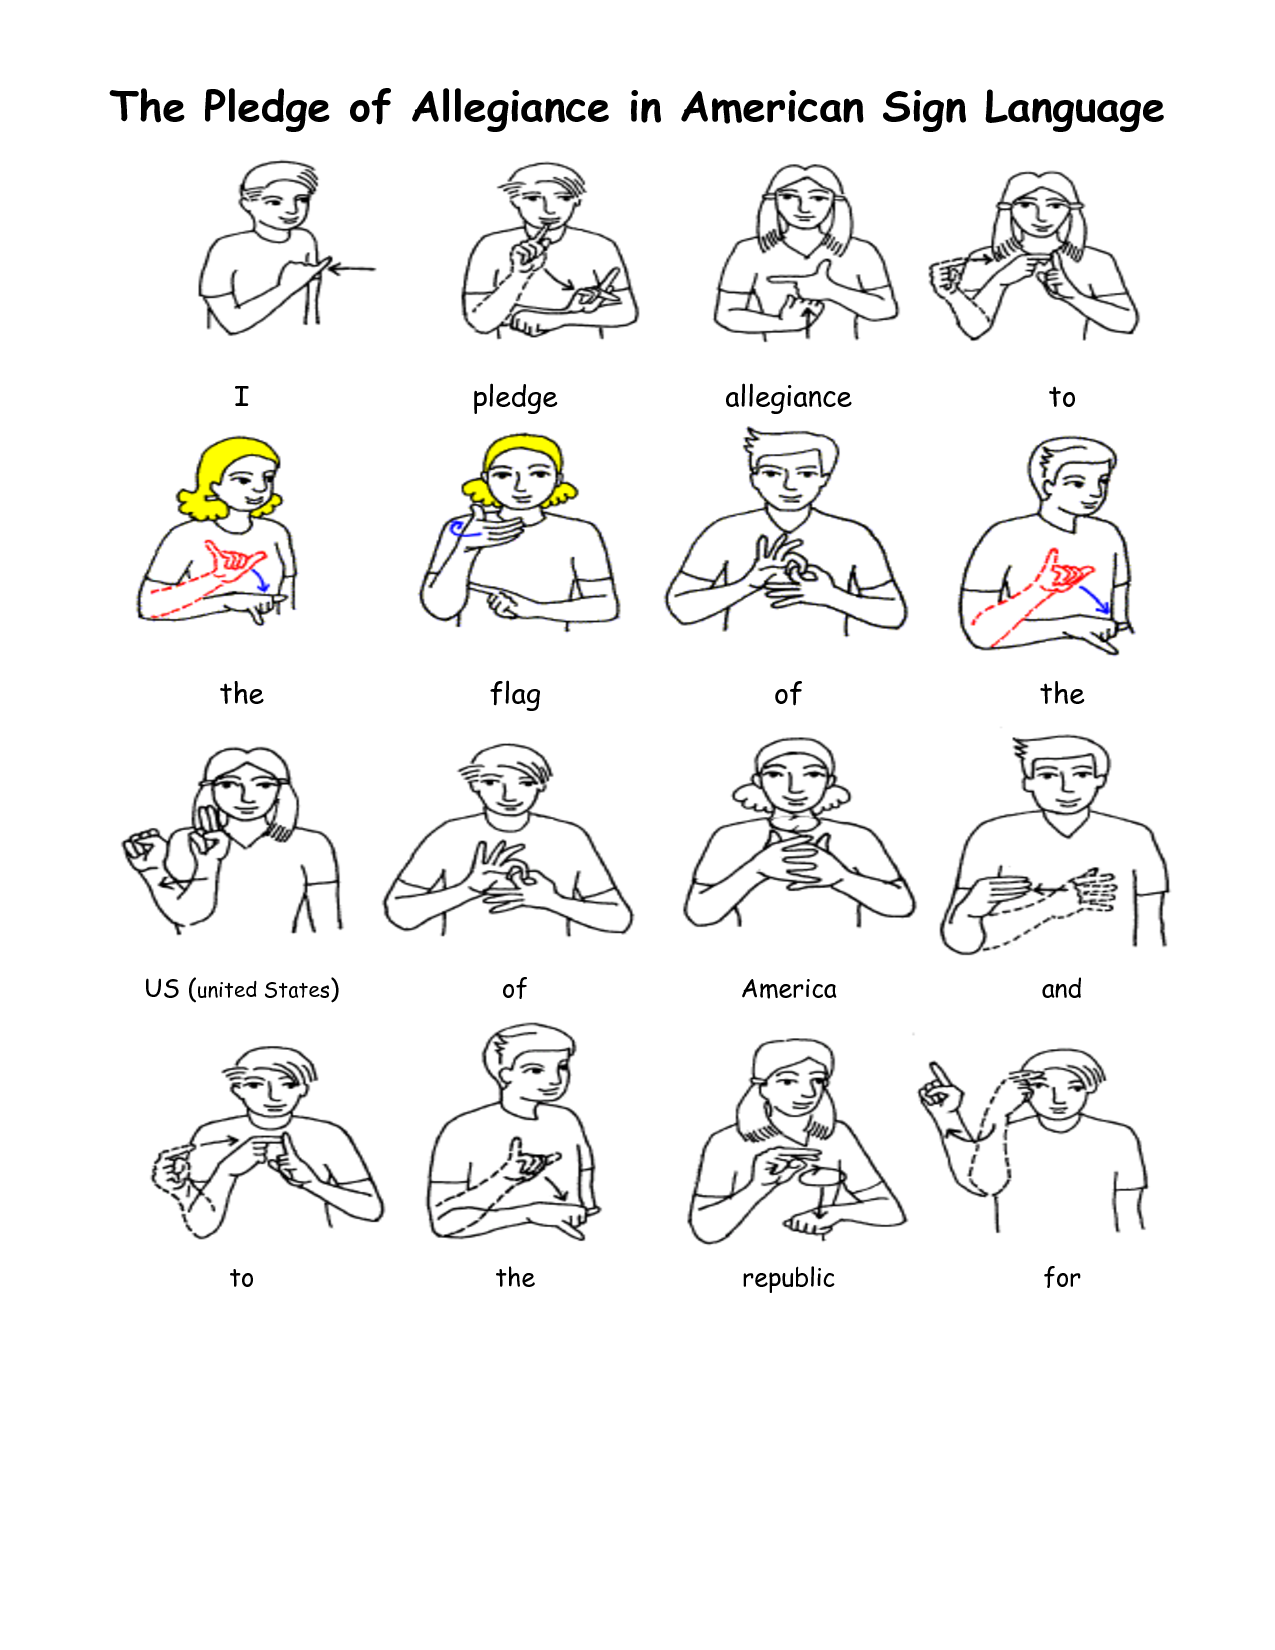 essay on american sign language Asl informative essay] - download as word doc (doc / docx), pdf file (pdf), text file (txt) or read online this is an informative essay about american sign language that i made last year.